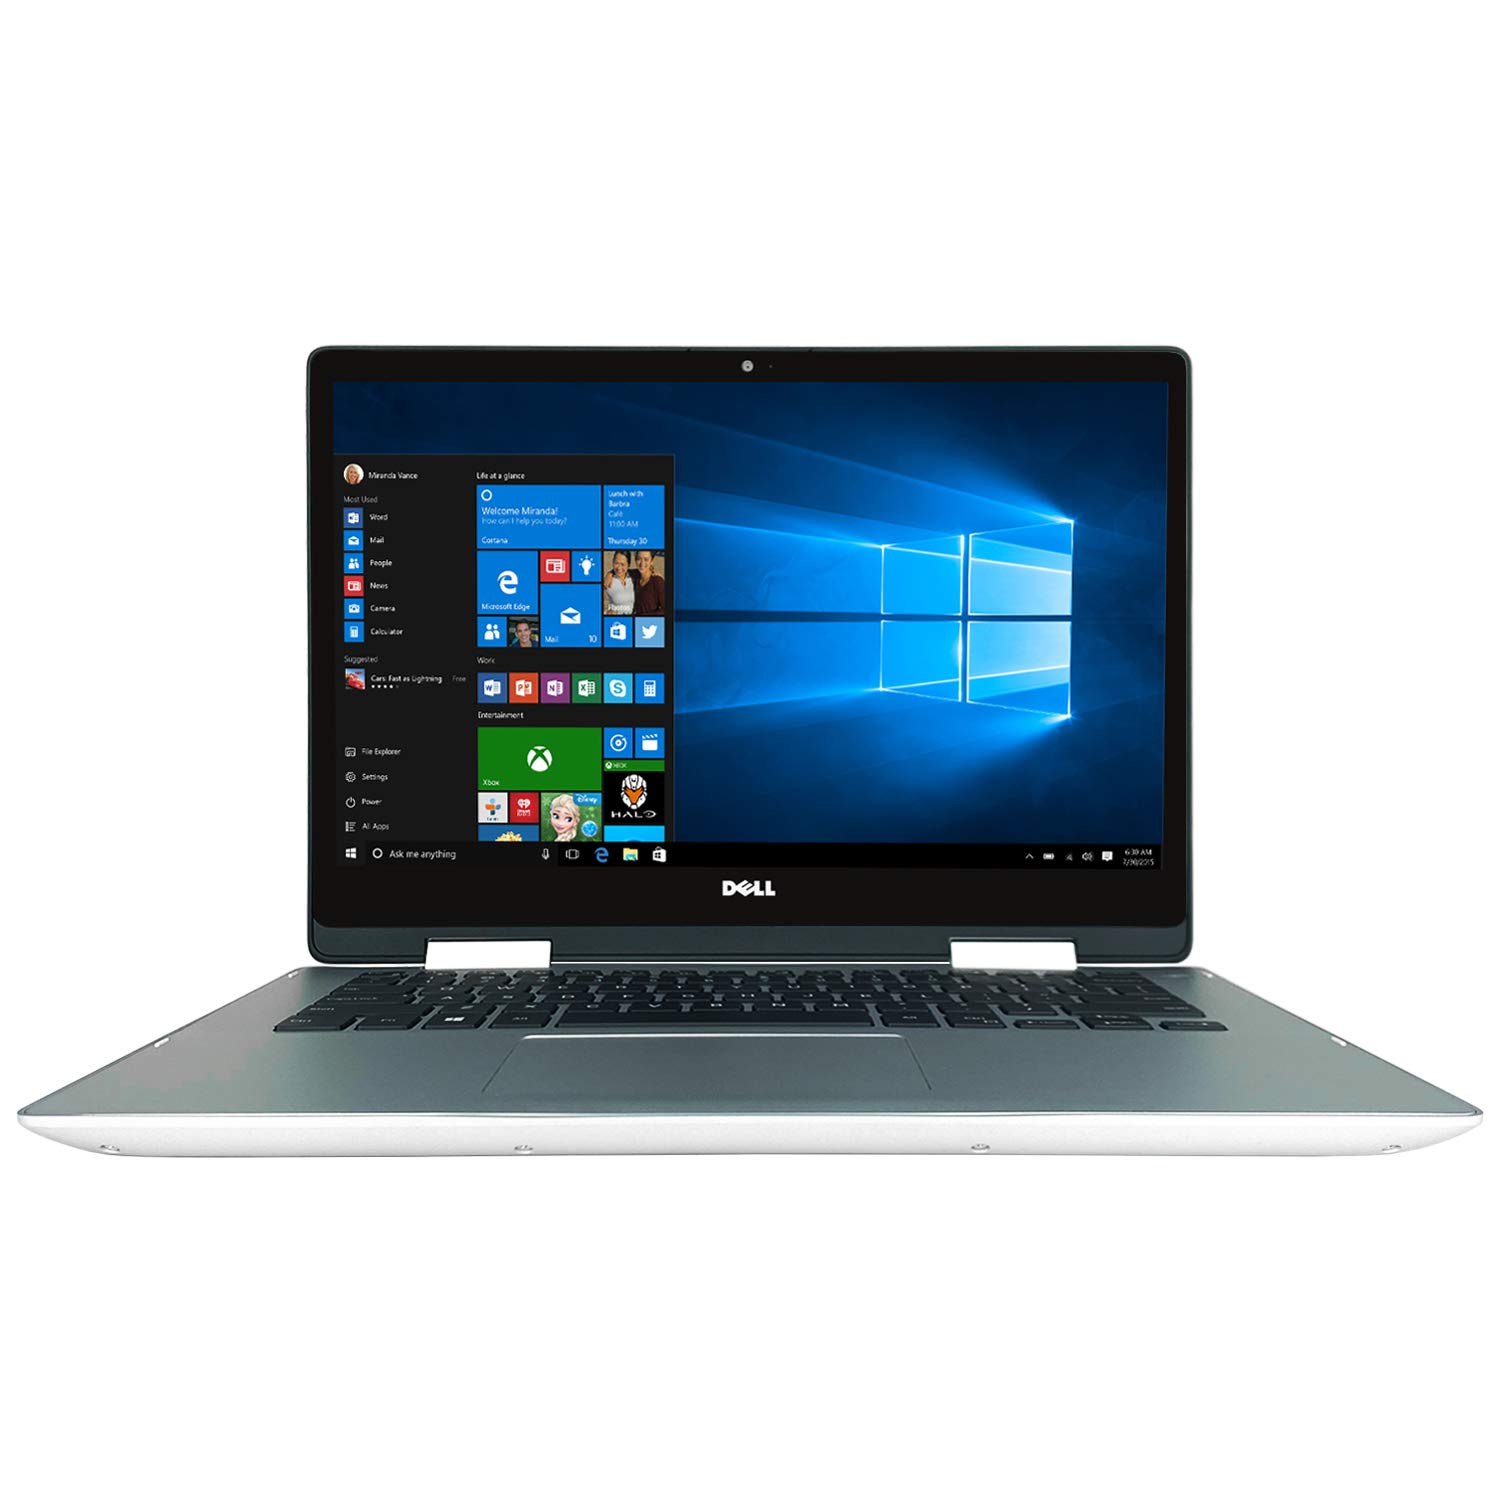 Dell Inspiron 5491 14 5000-Series FHD Multi-Touch 2-in-1 Laptop - 10th Gen Intel Core i7-10510U Quad Core CPU up to 4.90 GHz, 16GB DDR4 RAM, 512GB SSD, Intel UHD Graphics 620, Windows 10 Home